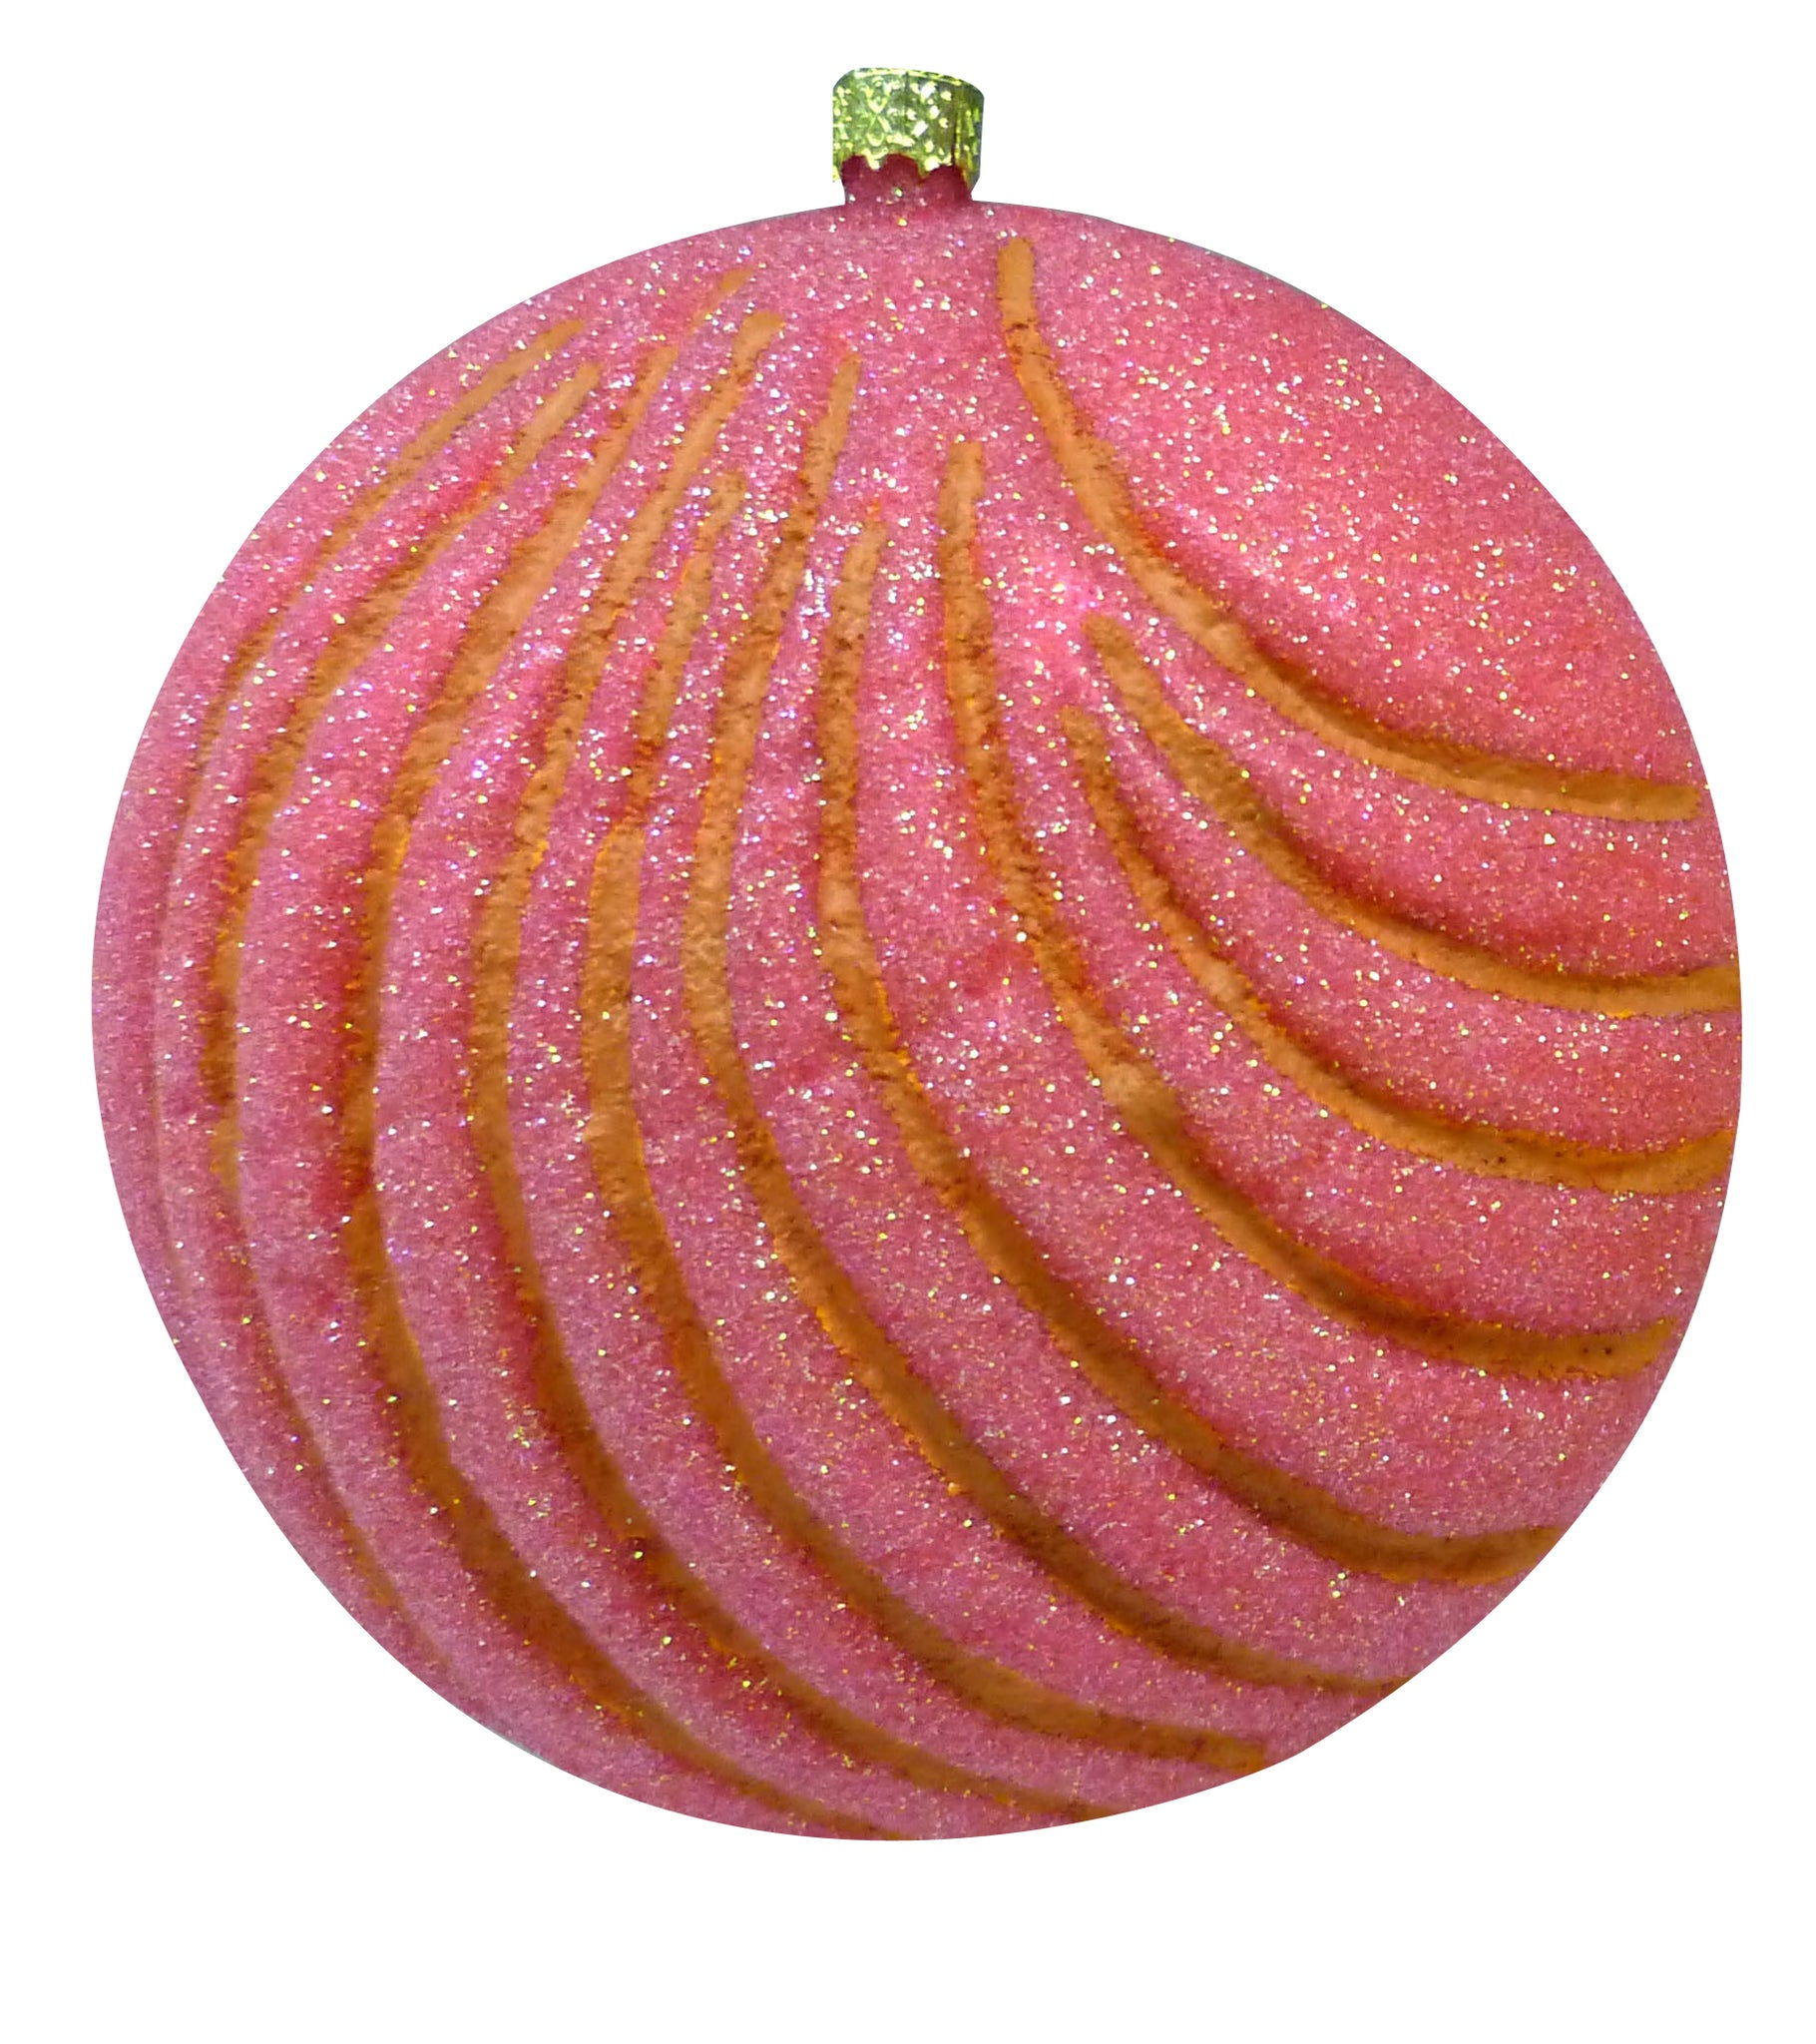 Pan Dulce Concha Fine Hand-Painted Glass Ornament by CasaQ